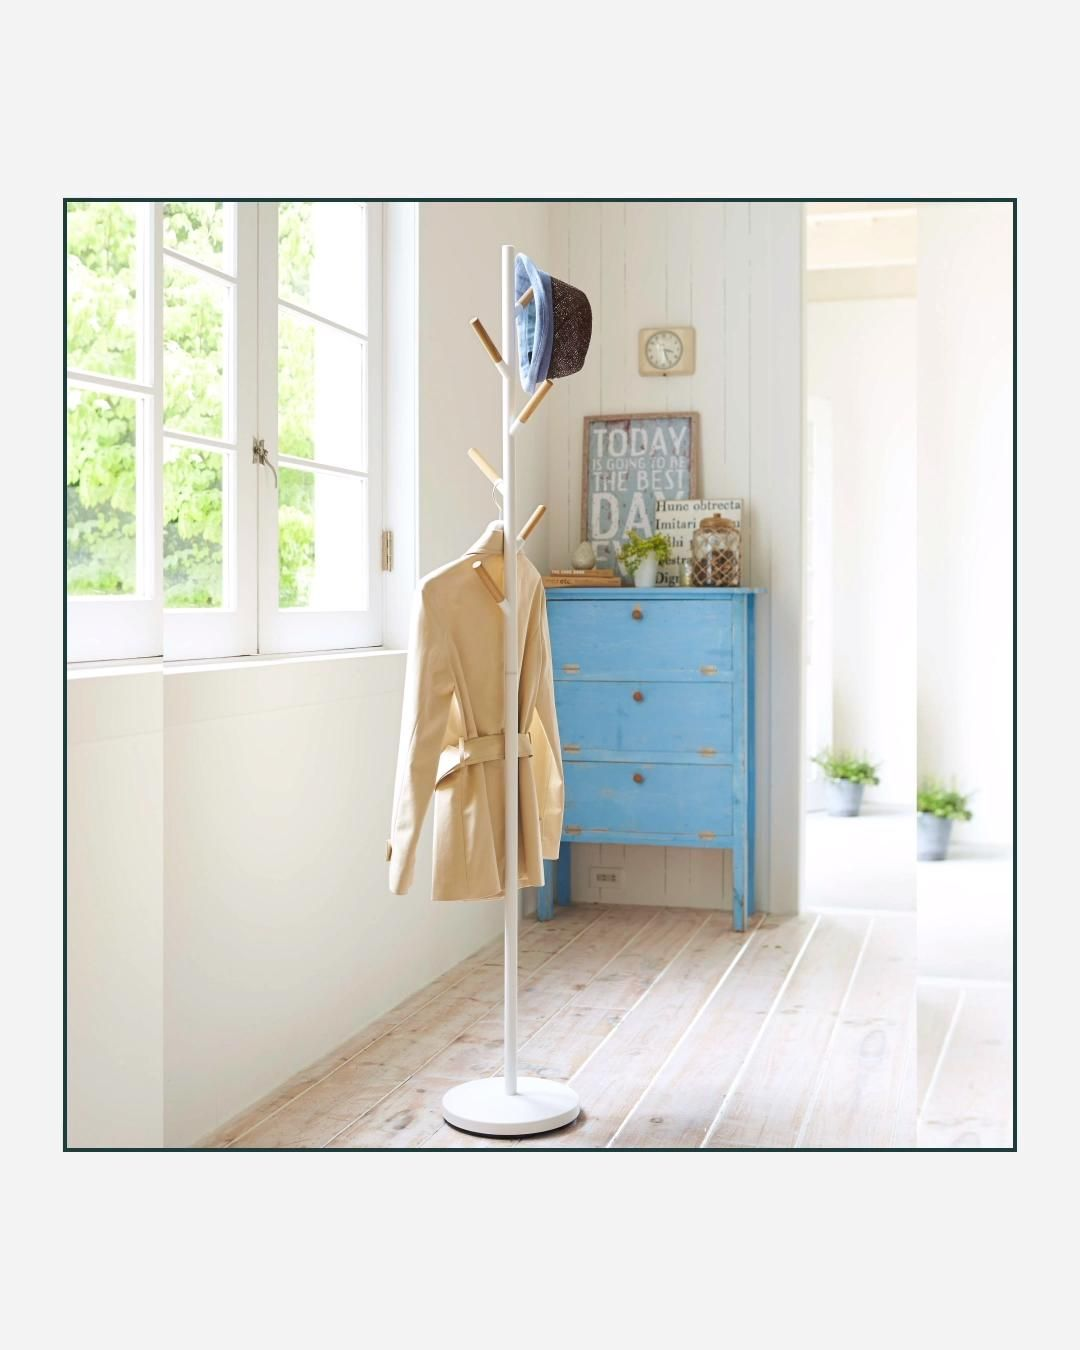 A clean, modern coat rack with a small footprint. Tucks away neatly into any entryway, living room, or office. It features a metal frame and the six decorative pegs, or branches, which lend a touch of warmth. The weighted base keeps everything perfectly stationary and standing. Use coat hangers or simply drape your coats, jackets, scarves, and hats on any of the six wood-tipped coat hooks.